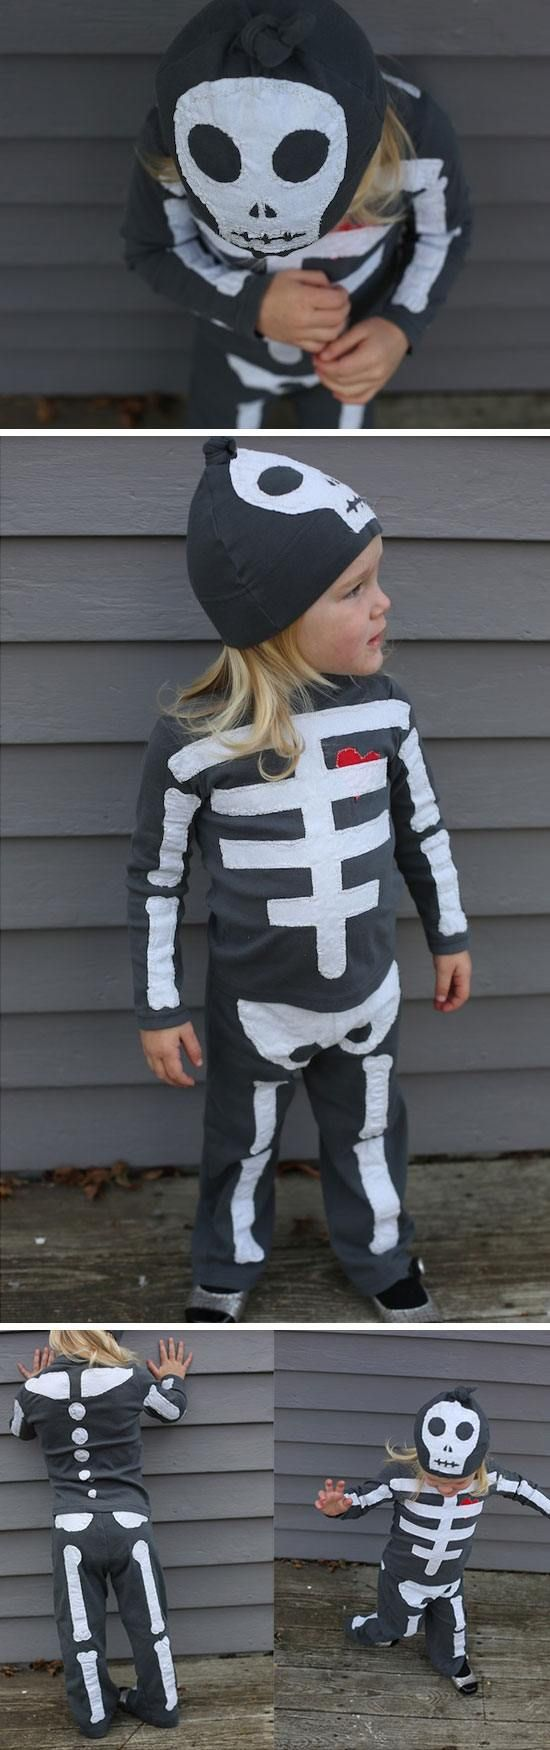 Skeleton Costume | Click for 30 DIY Halloween Costumes for Kids to Make | DIY Halloween Costumes for Toddlers